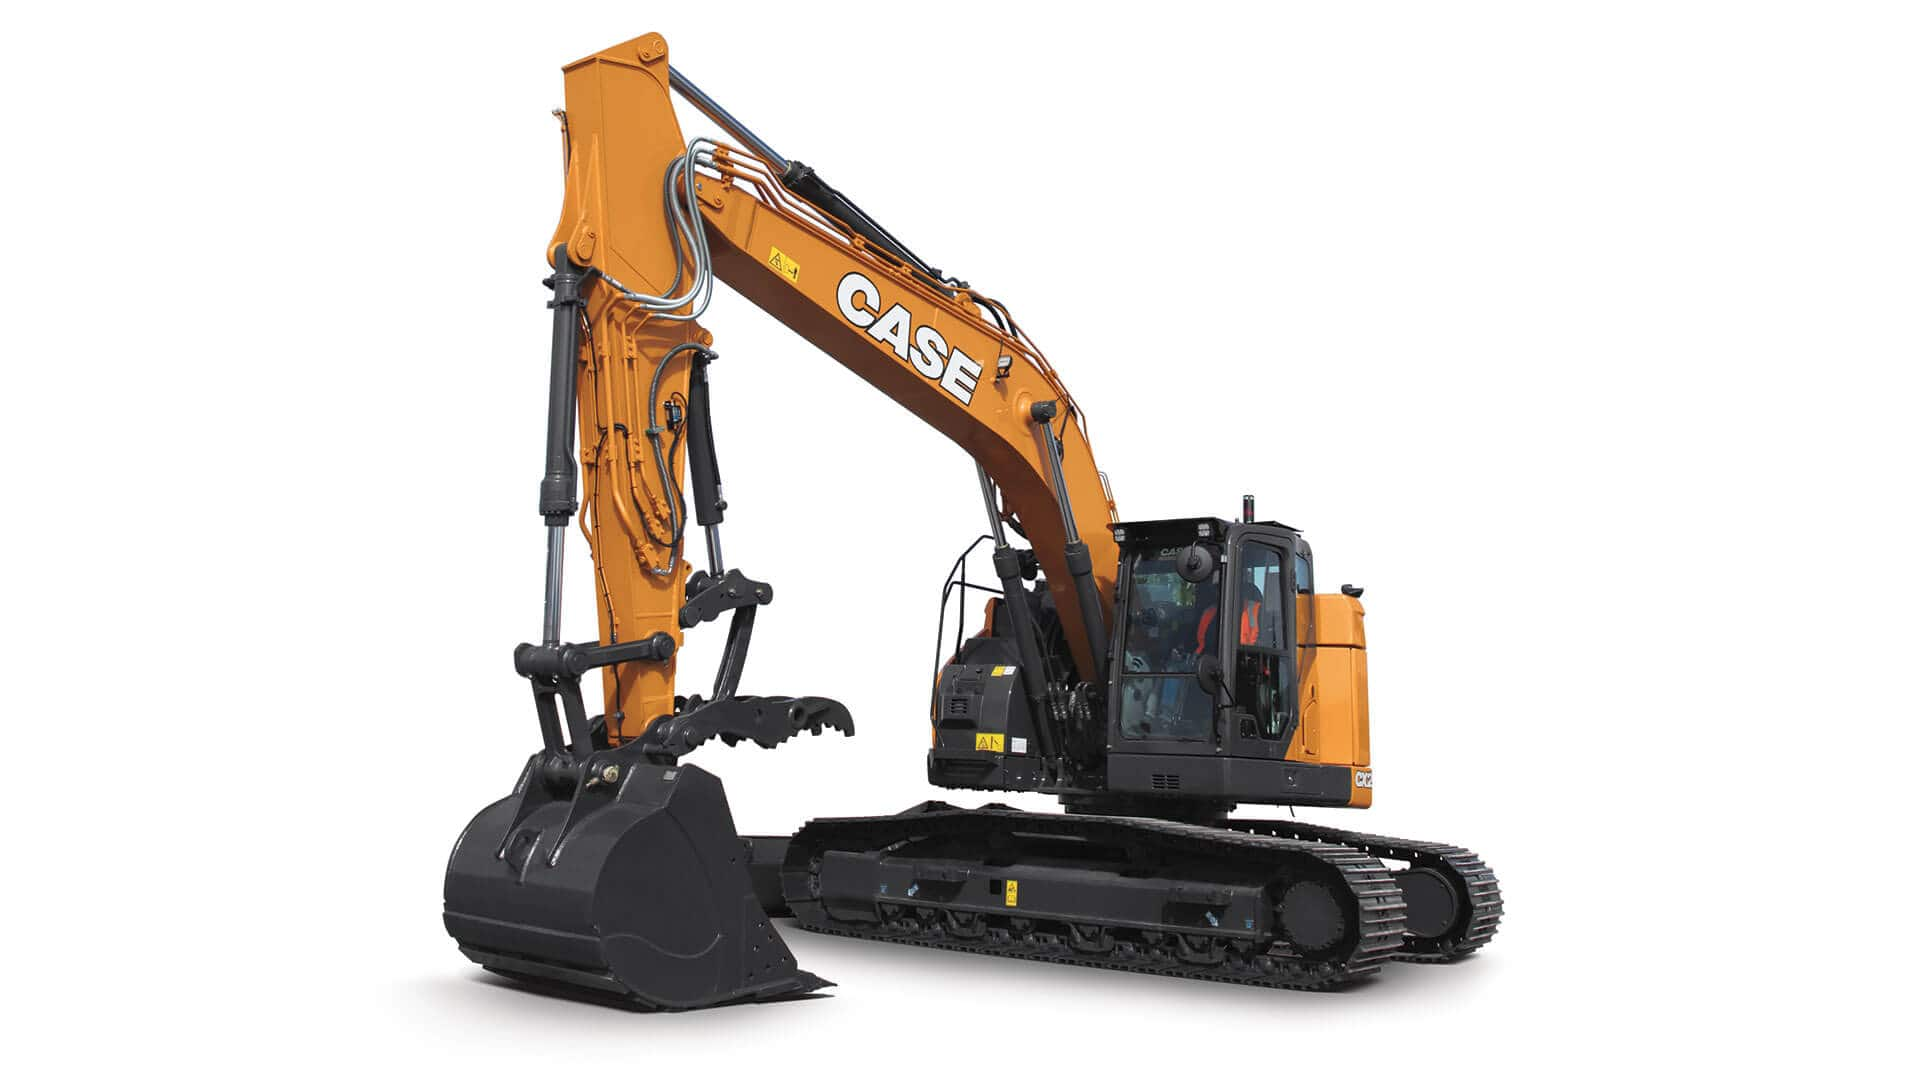 https://assets.cnhindustrial.com/casece/nafta/assets/Products/Excavators/Full-Size-Excavators/CCE_EXC_DSER_photo_3-13-17_CX245D_SR_IMG_9268.jpg?Width=800&Height=450